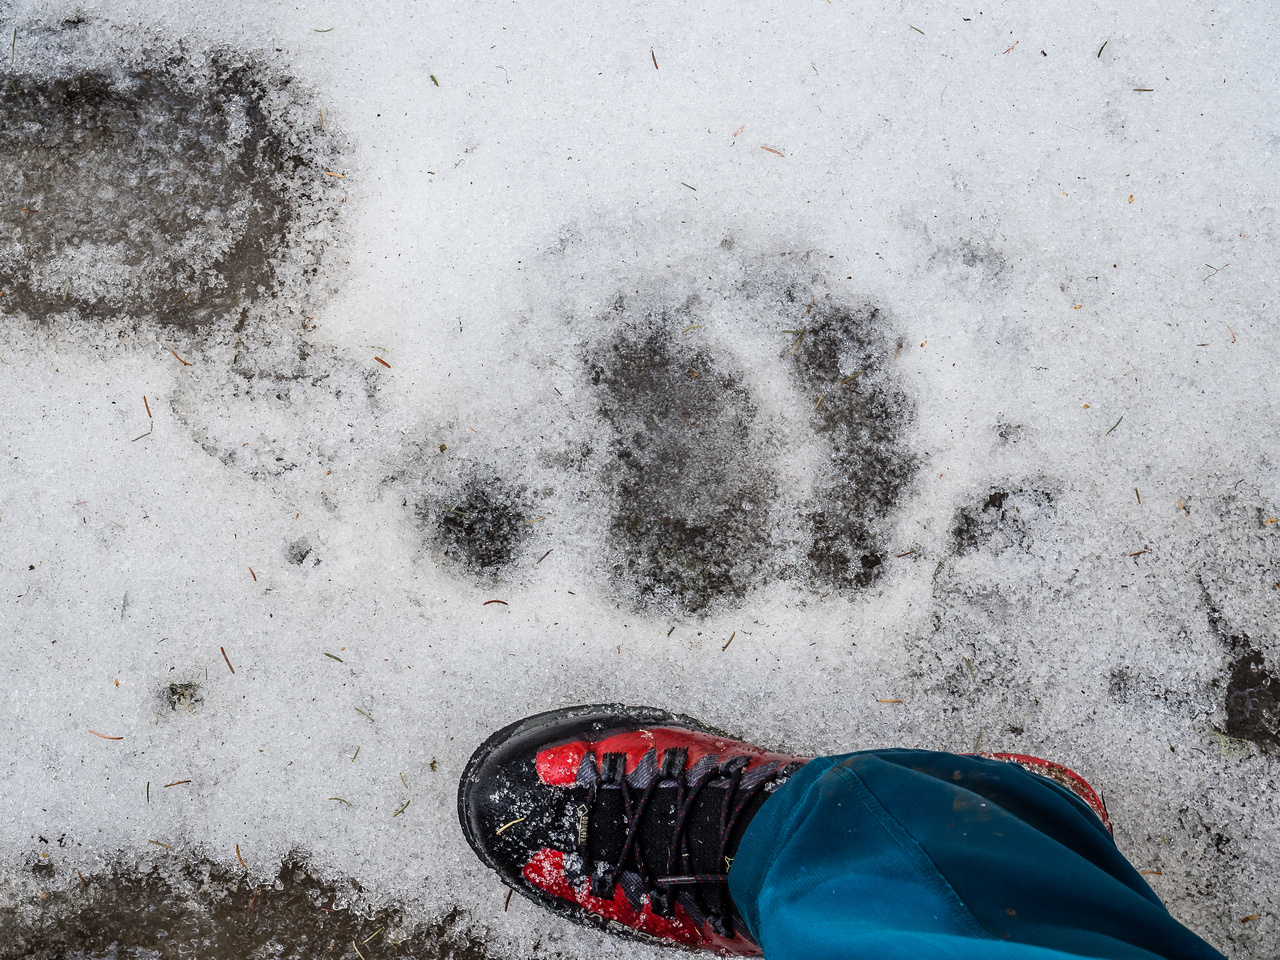 Hmmm. That's a pretty large sized bear print I've been following.